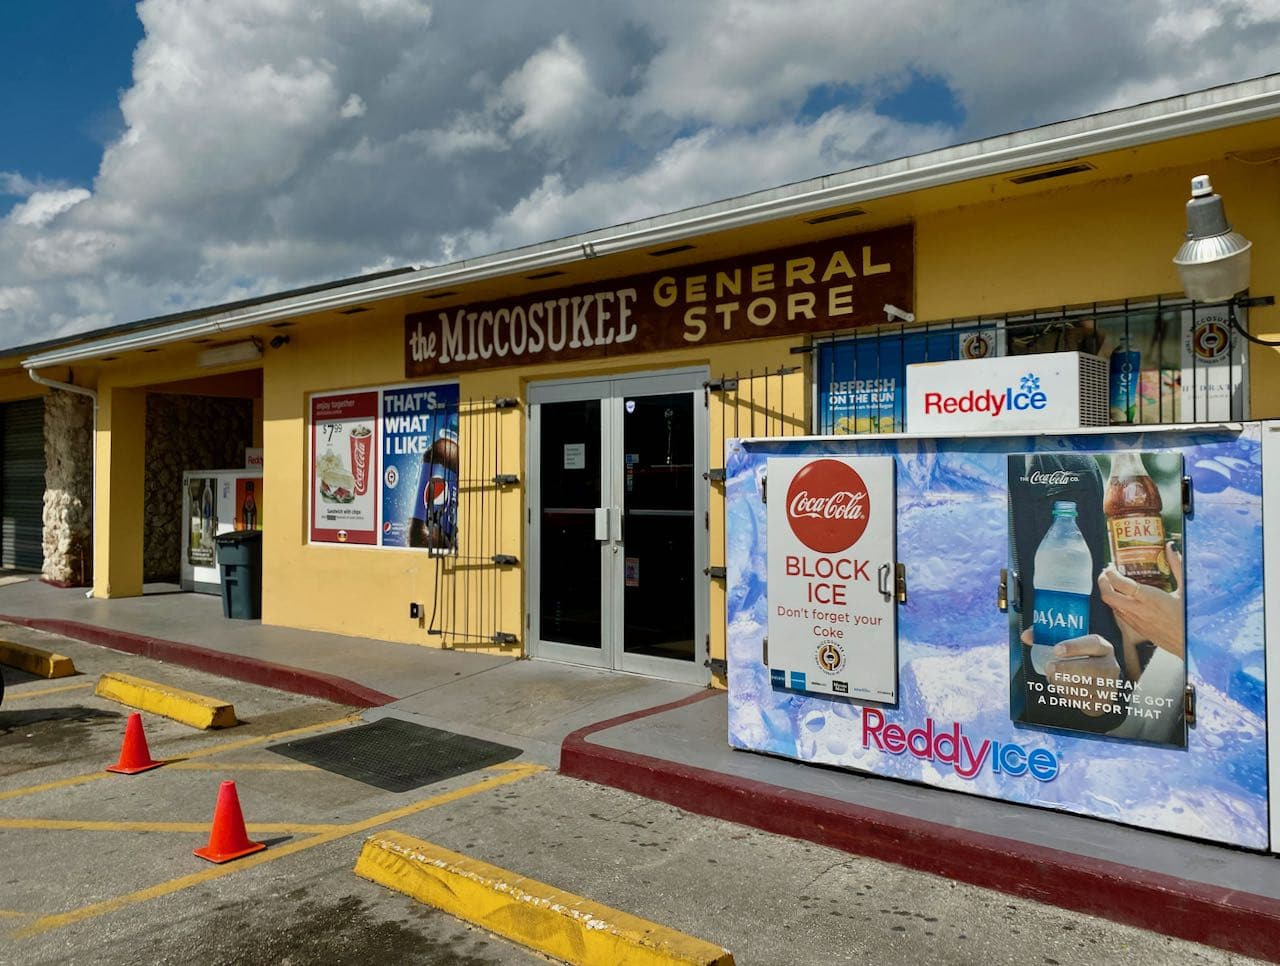 Miccosukee General Store Attractions and Places to Stop Along the Tamiami Trail/U.S. Highway 41